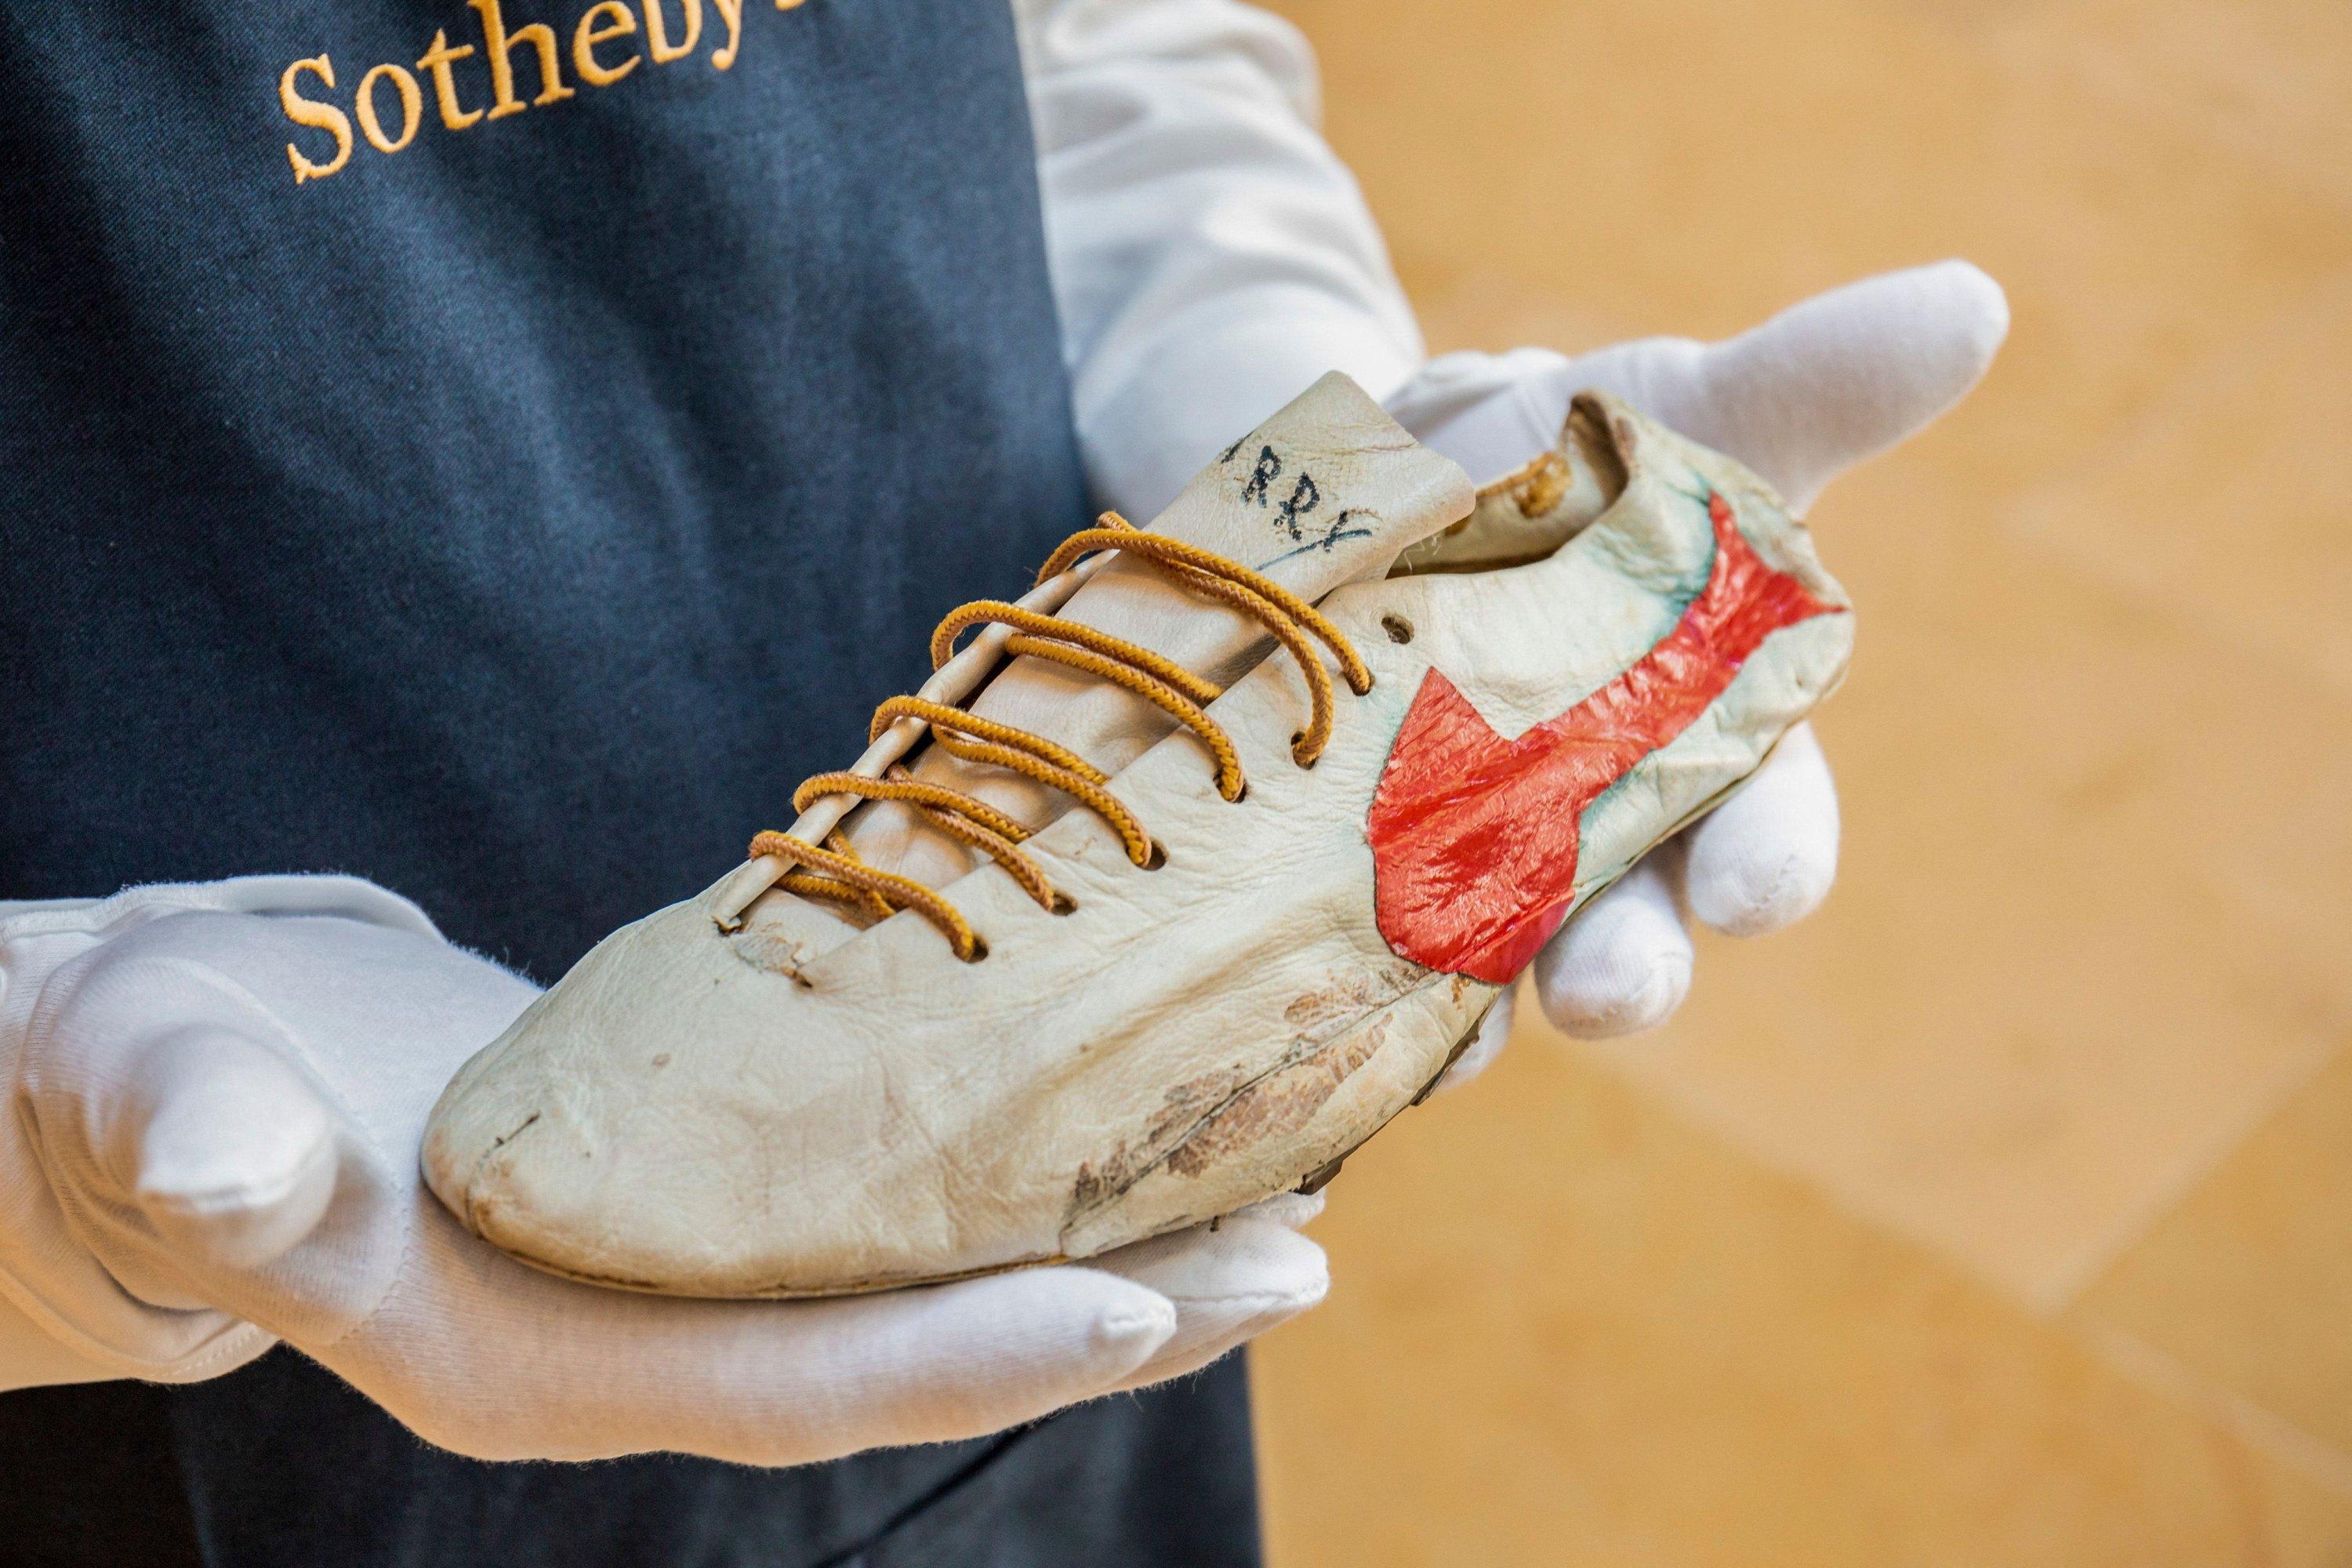 A Sotheby's staff holds a 'prototype logo' track spikes running shoe handmade by Nike co-founder Bill Bowerman in the 1960s, New York, U.S., July 7, 2021. (Sotheby's/AFP Photo)